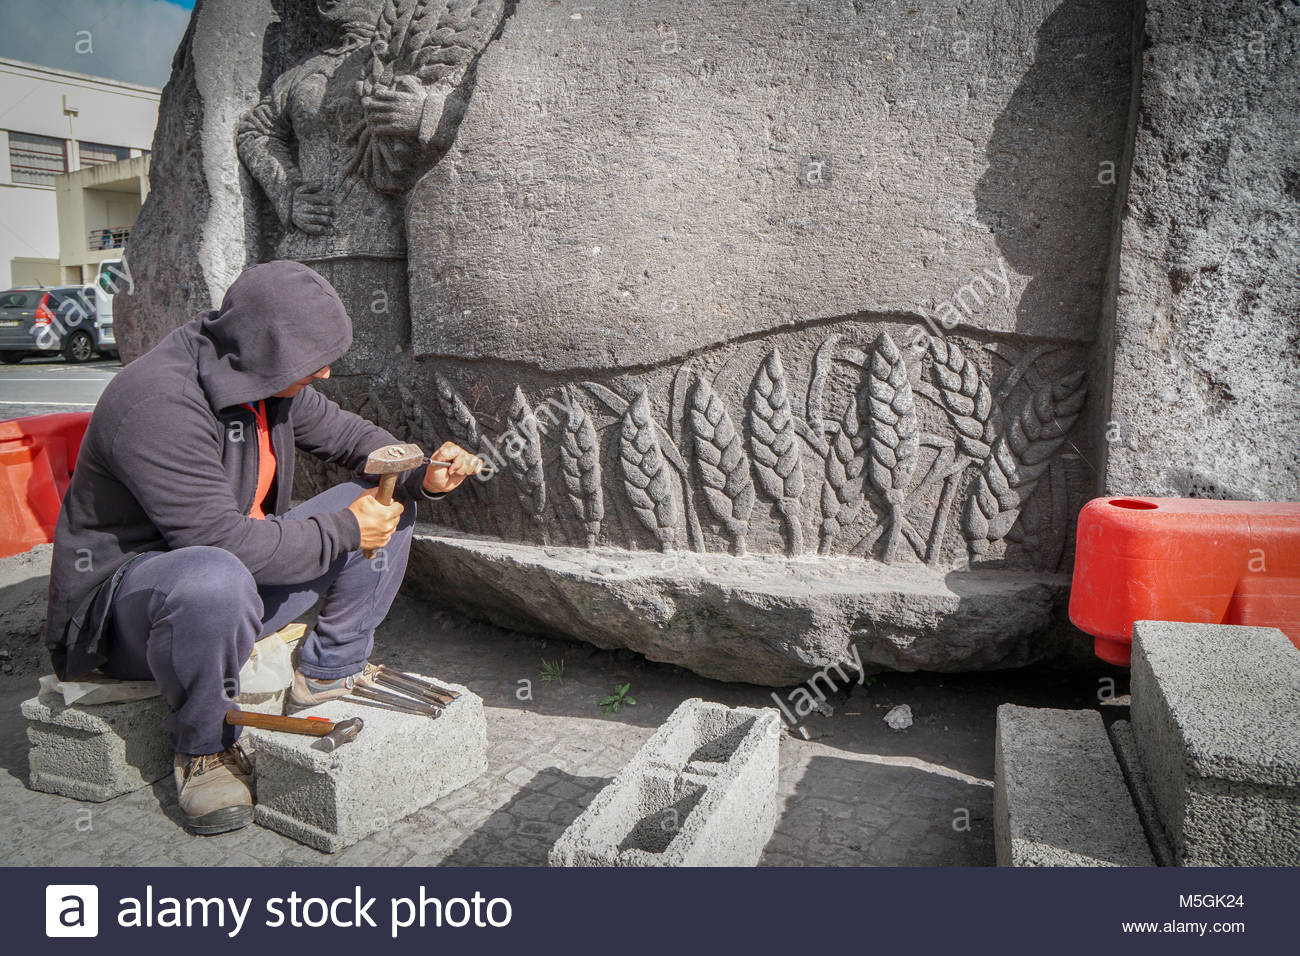 a large stone is being worked by a sculptor in Povoação, Sao Miguel, Azores - Stock Image